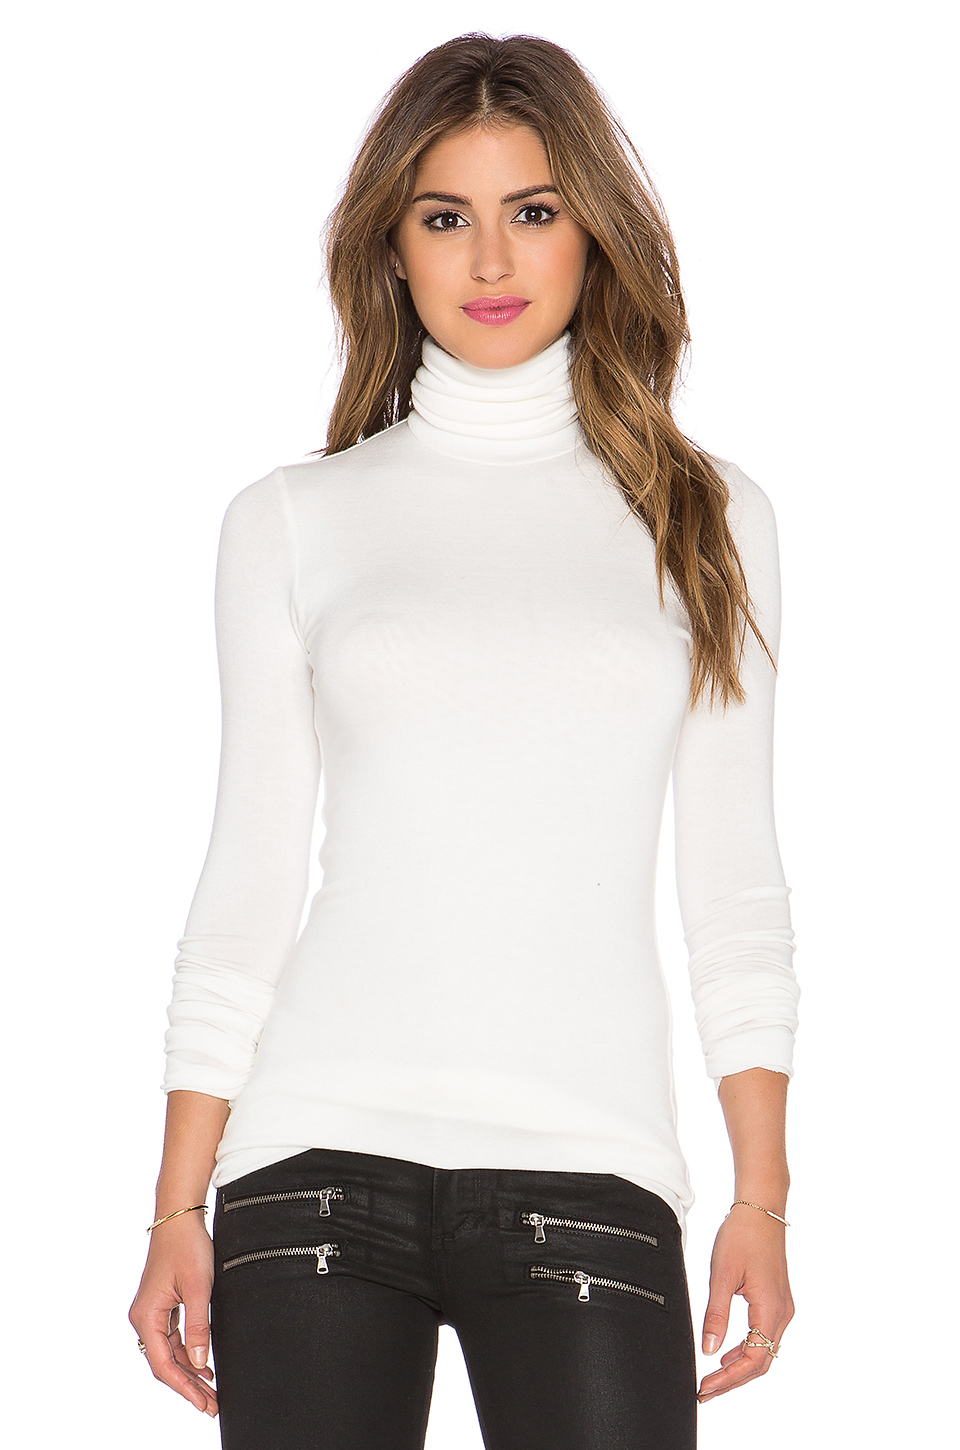 twenty Long Sleeve Turtleneck in Off White